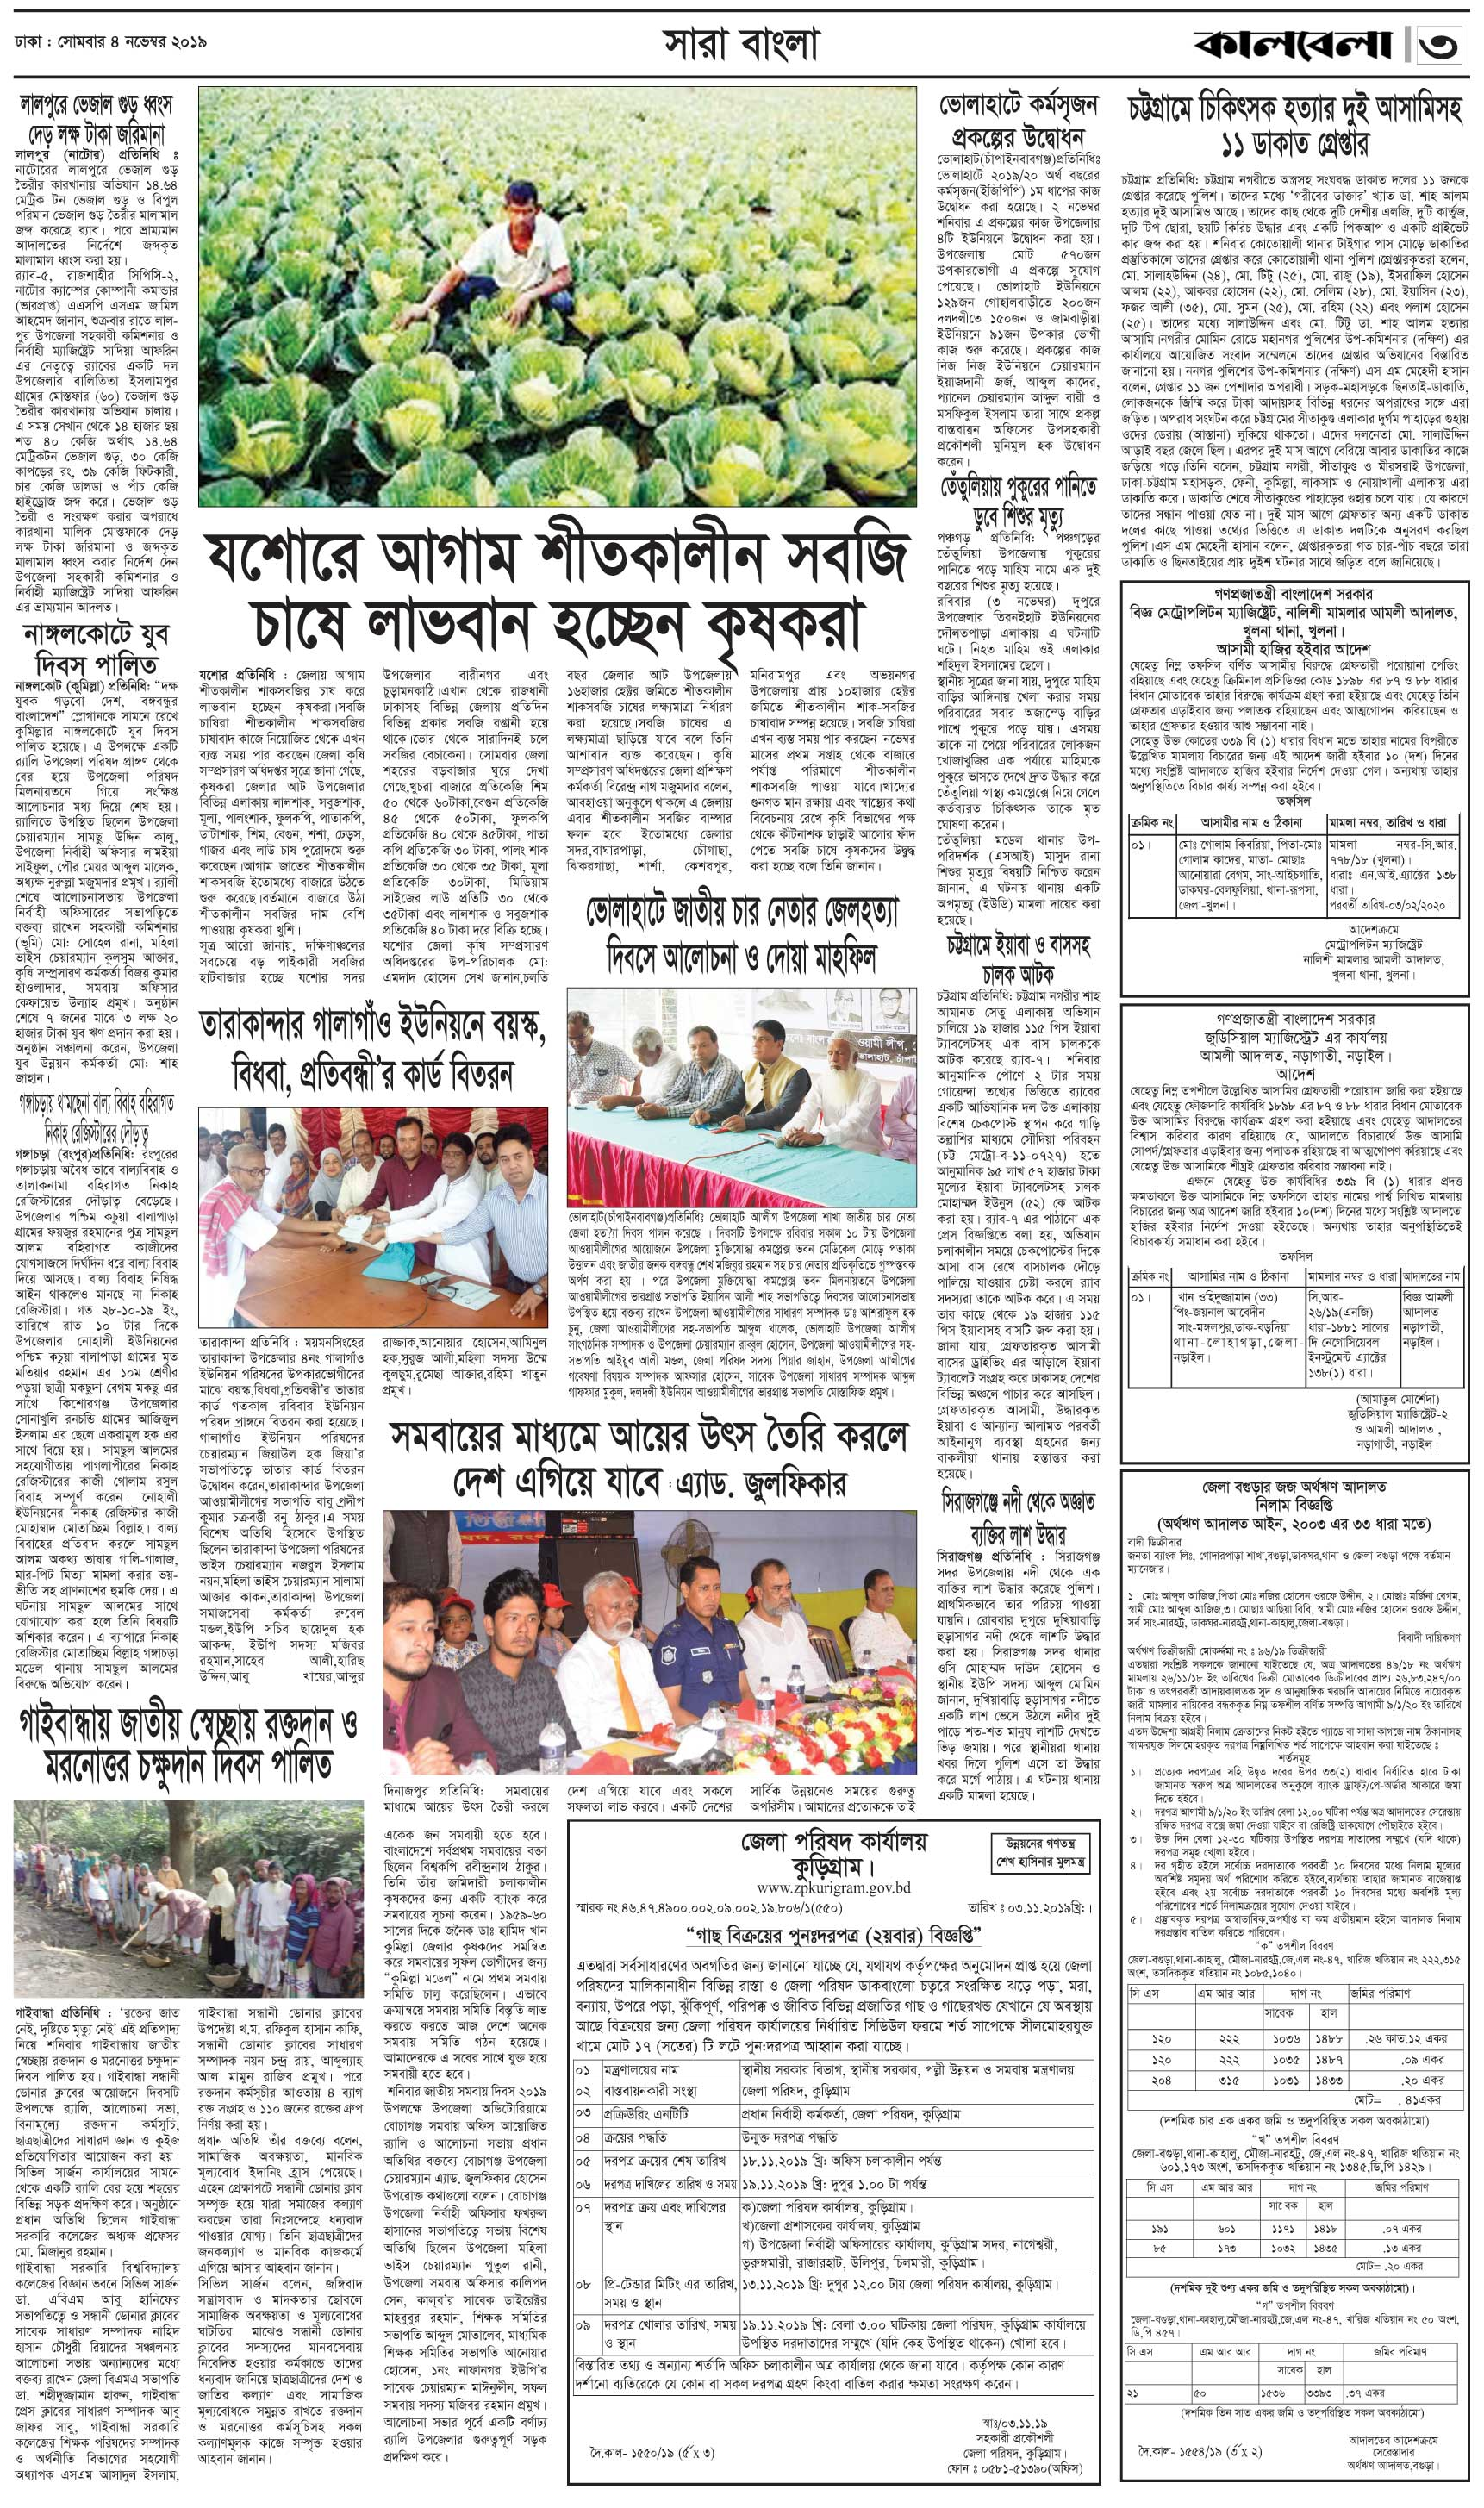 Page-3-(03-11-2019).qxd_Pag